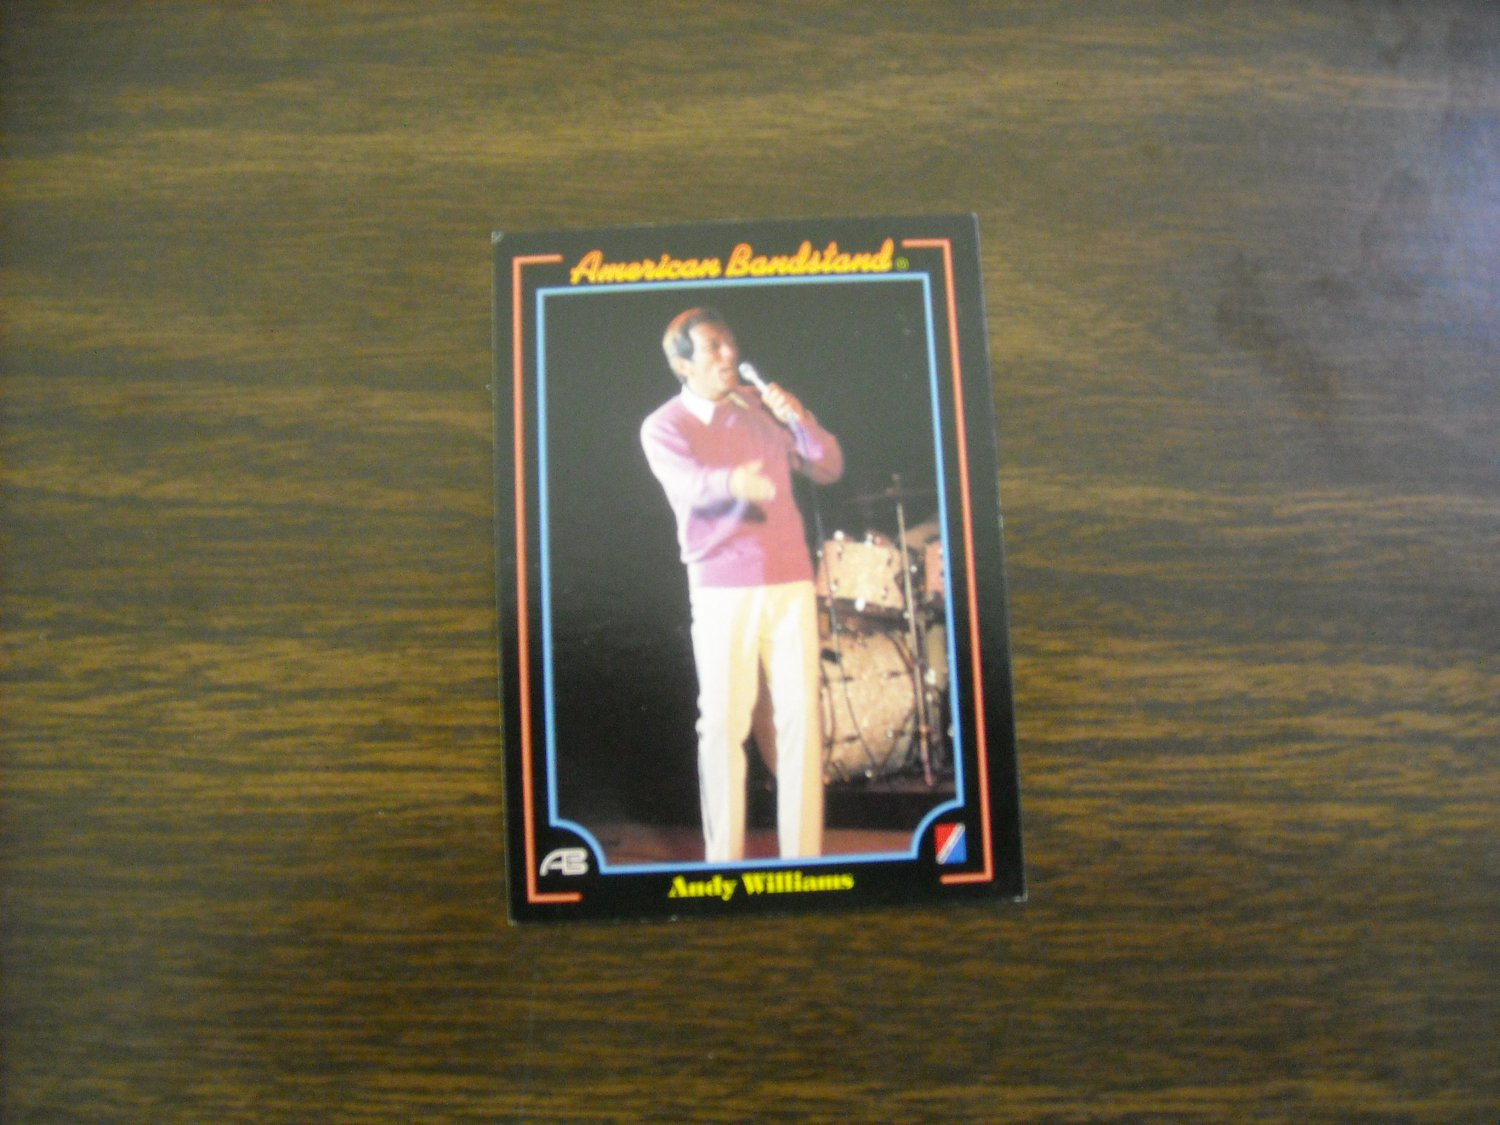 Andy Williams American Bandstand Card No. 17 - 1993 Collect A Card